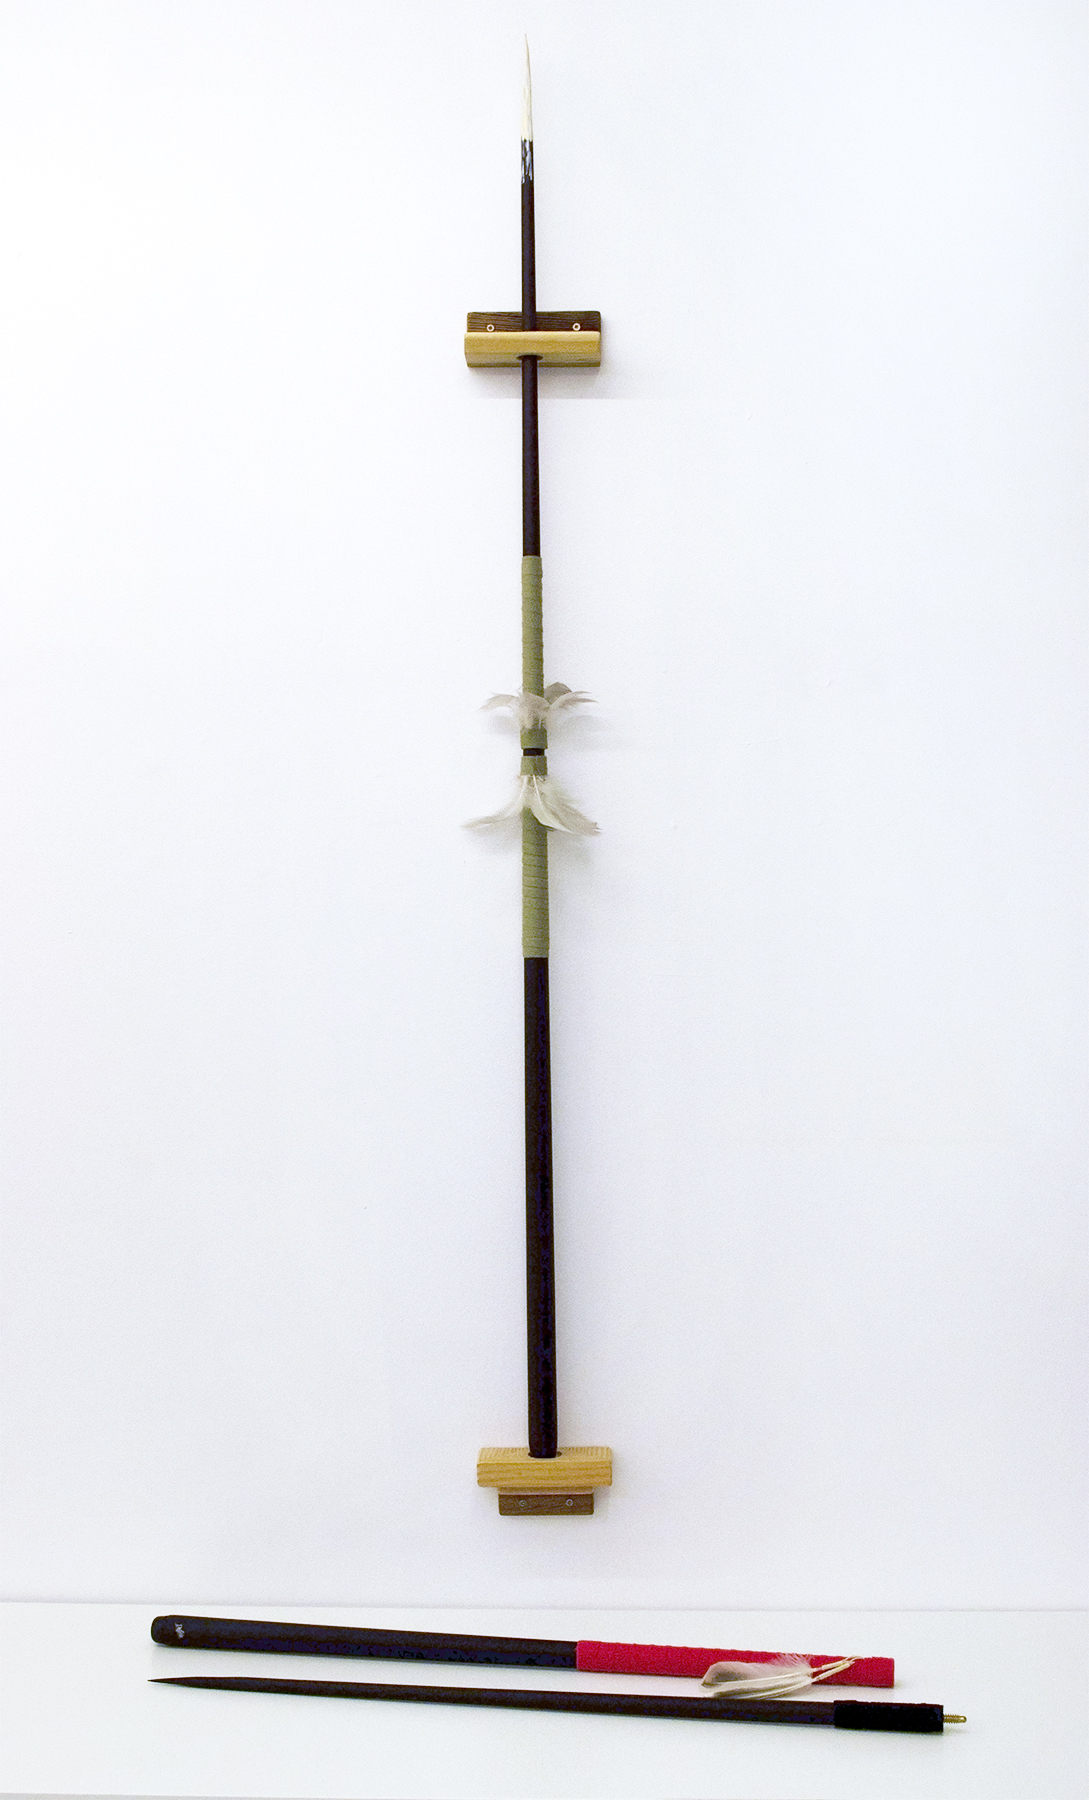 Spears (5), 2018, Carlos Colín, Pool cues, feathers, wood, Dimensions variable, $1,200